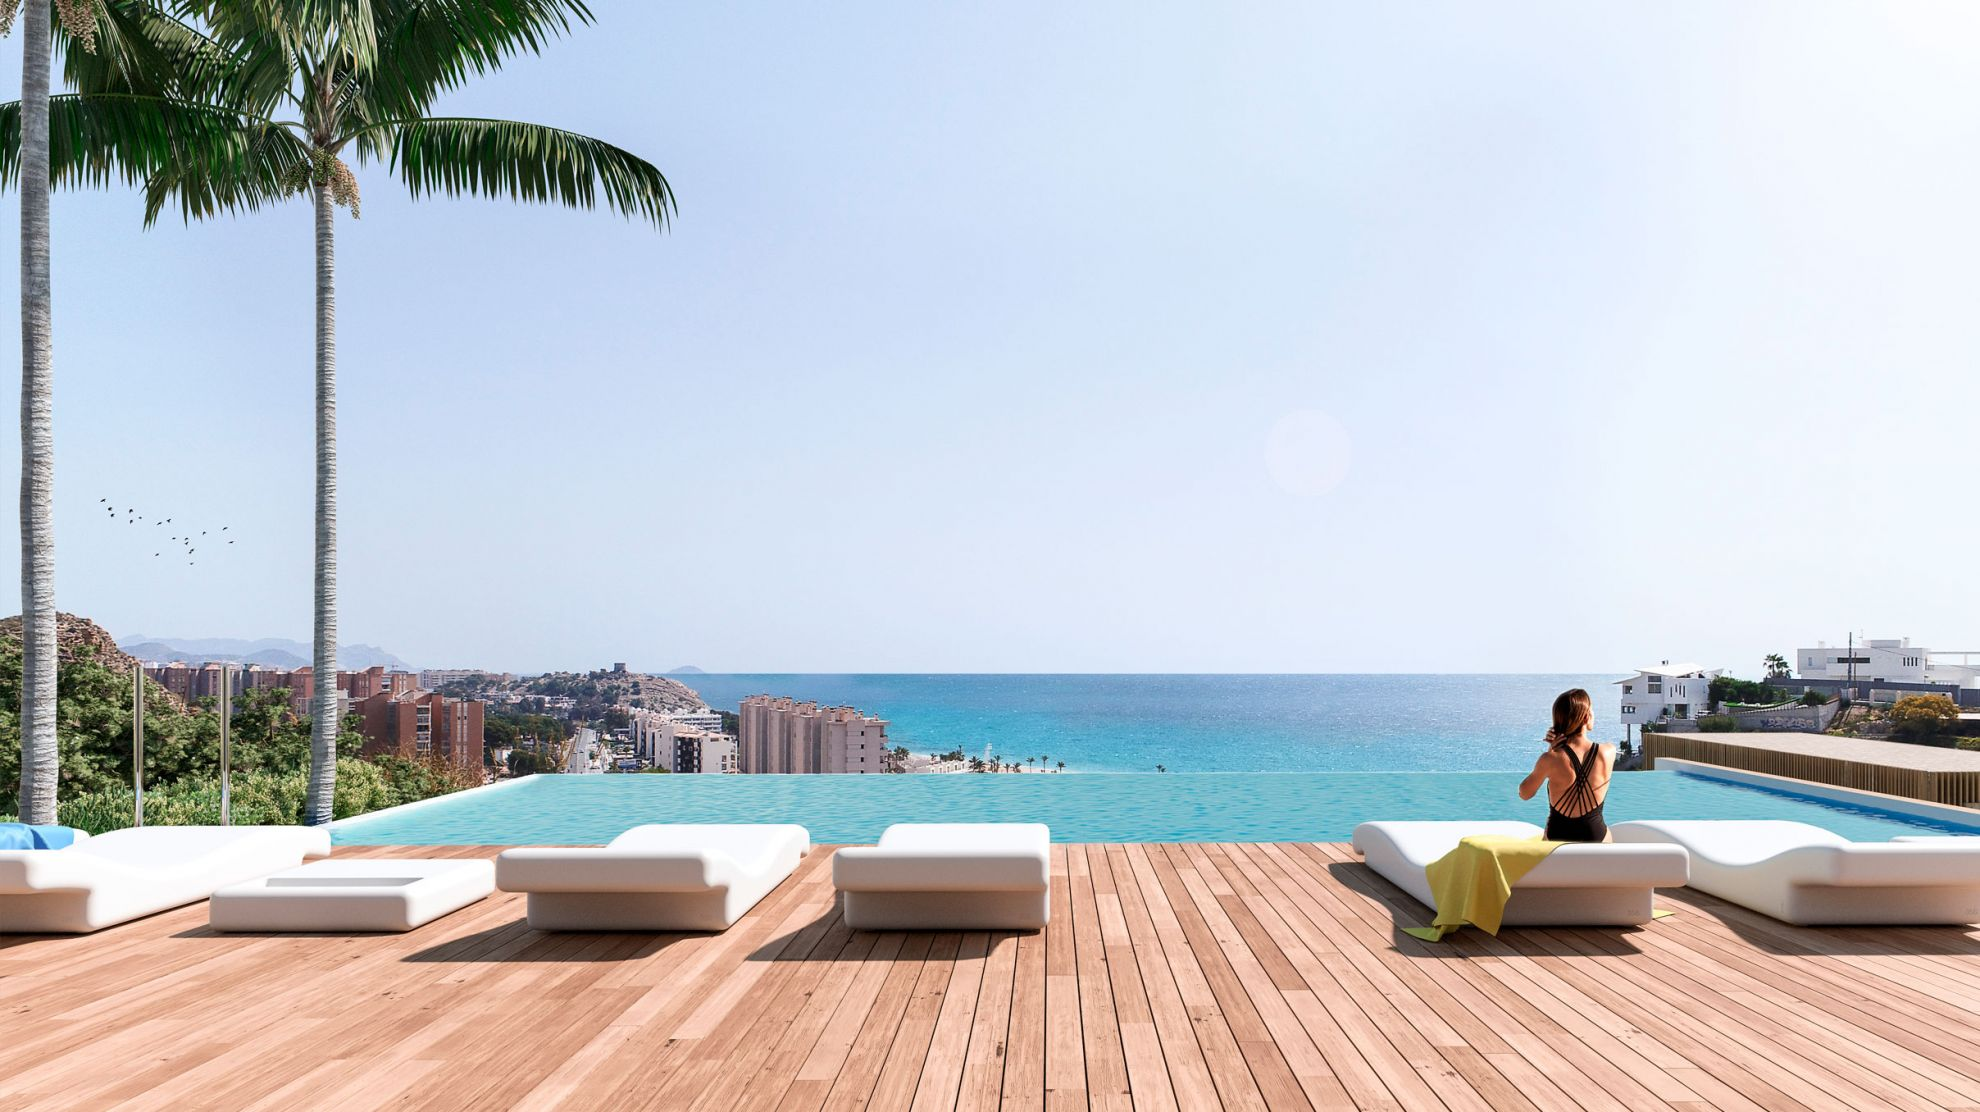 2 and 3 bedroom penthouse-style apartments with big terraces overlookg the sea. House 12 31